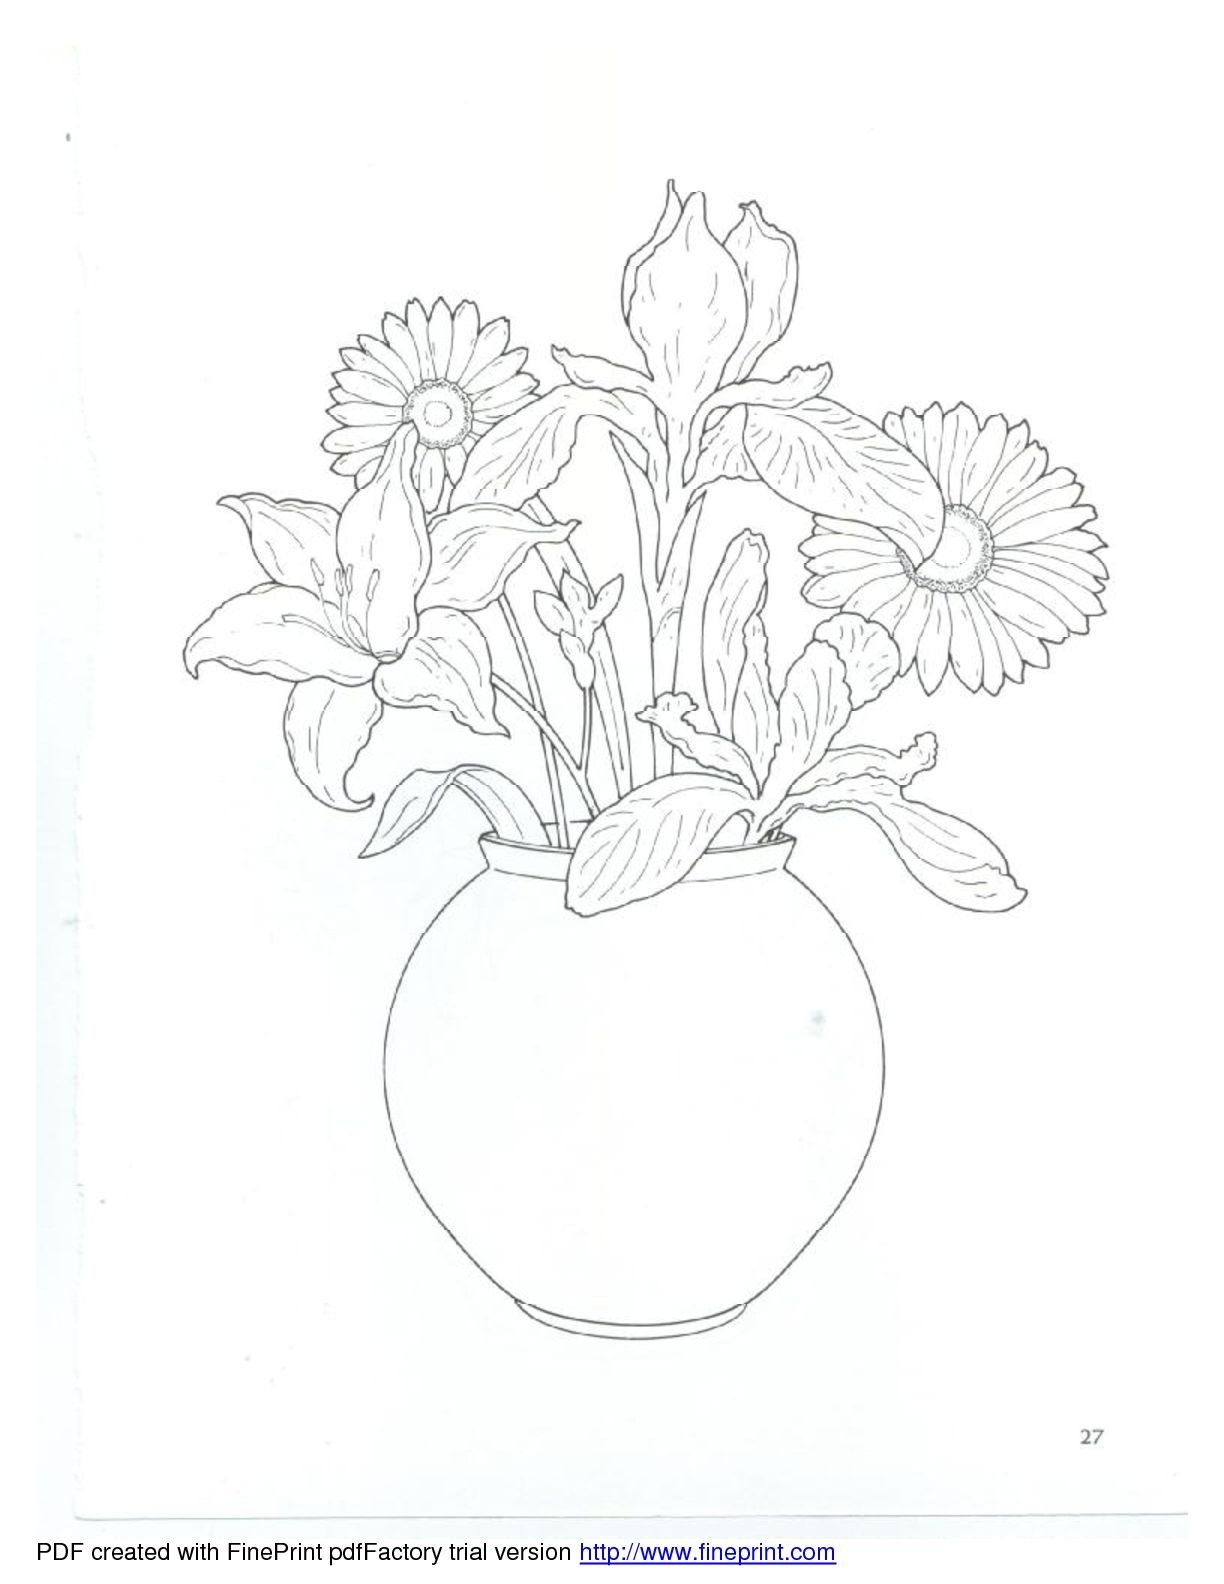 Dover - Floral Bouquets Coloring Book | boyama | Pinterest ...